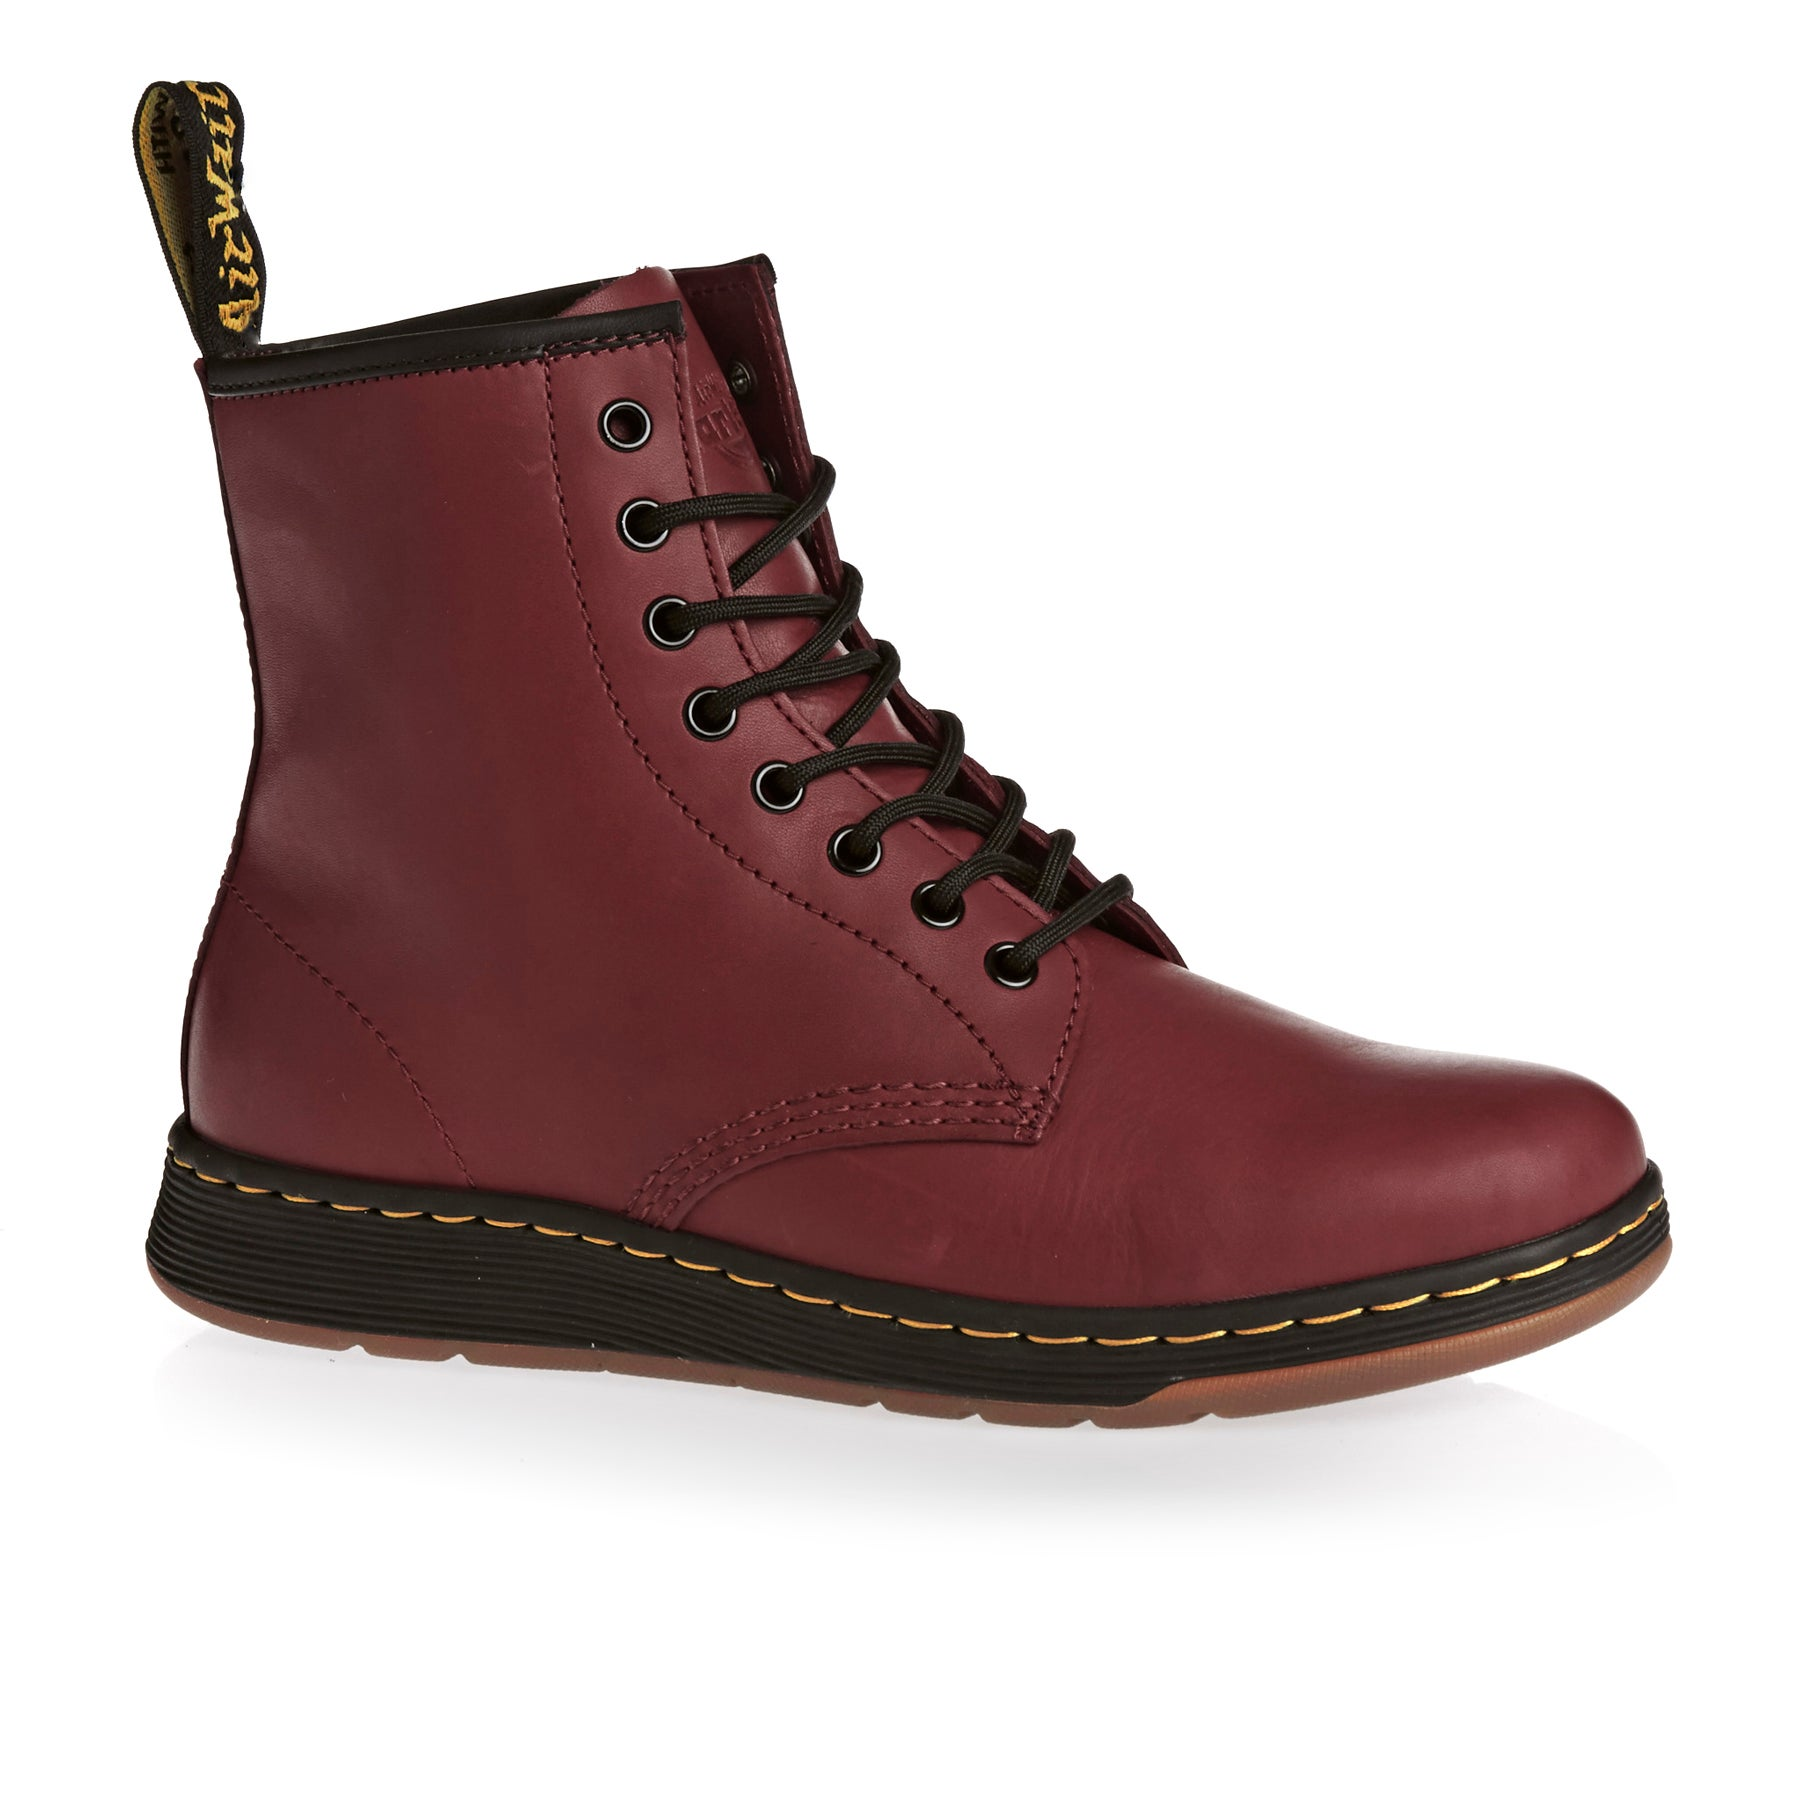 Dr Martens Newton Boots - Cherry Red